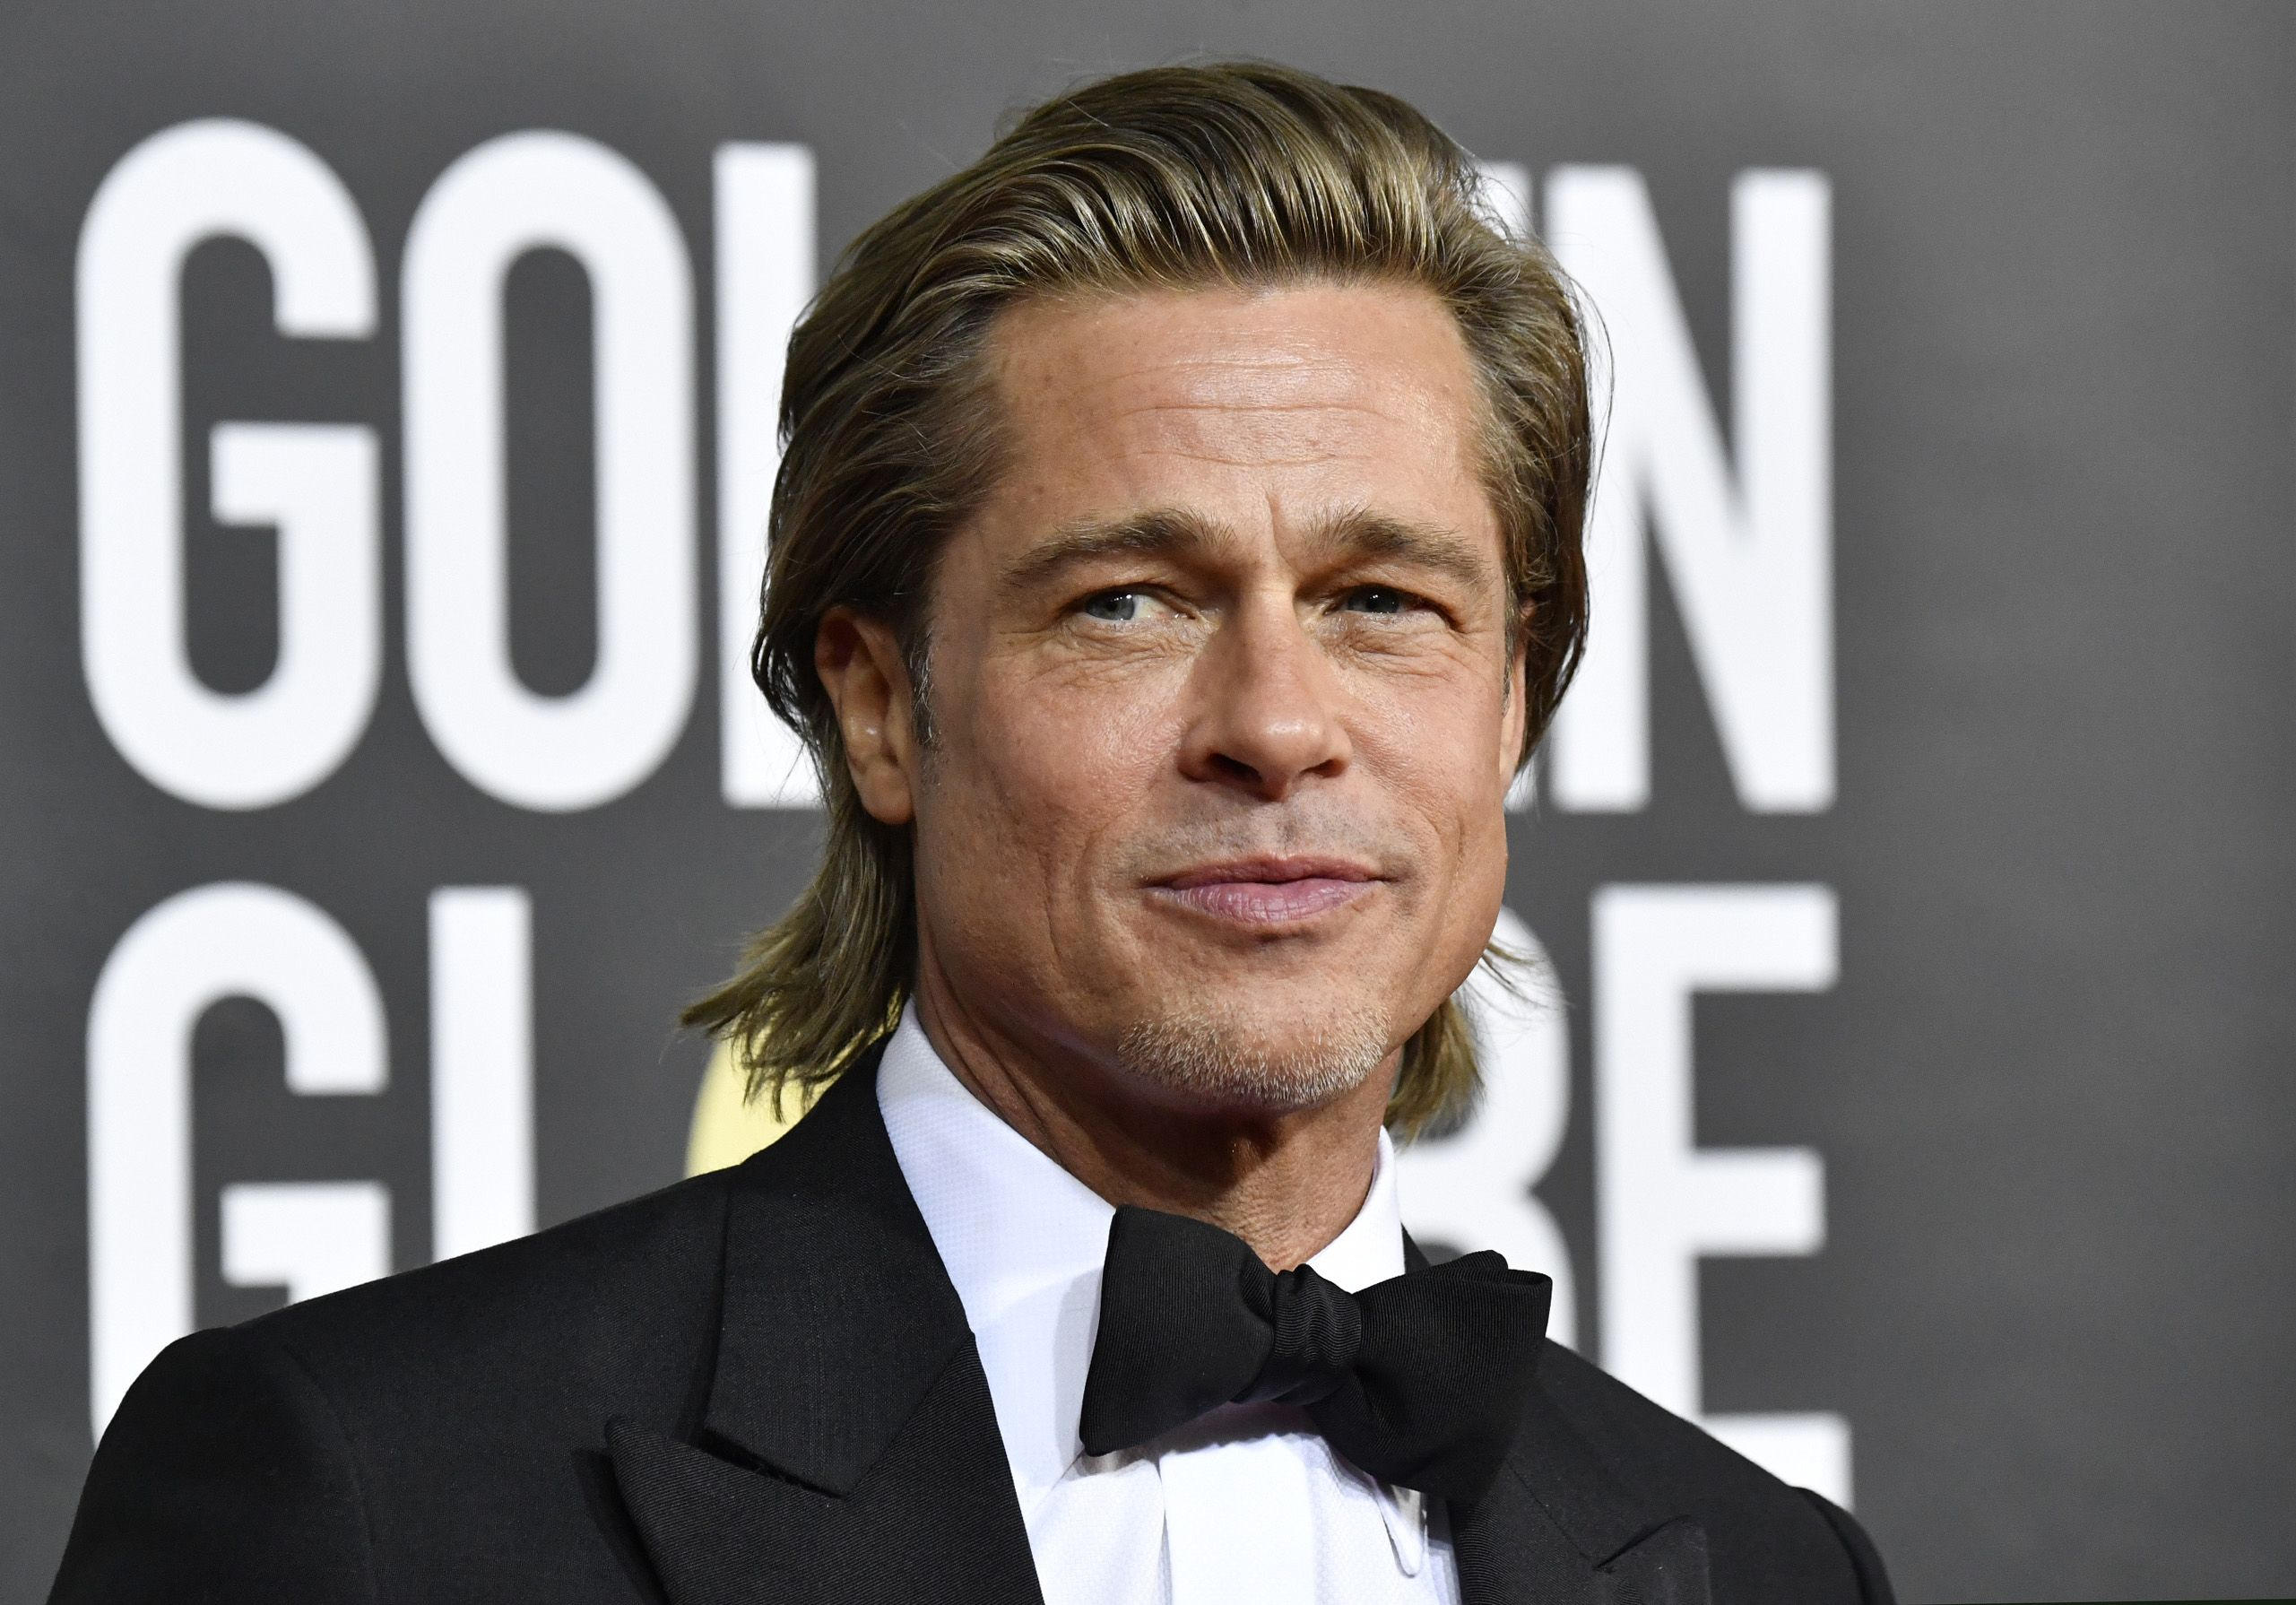 Brad Pitt Allegedly Left His Children Out of His Golden Globes Speech on Purpose